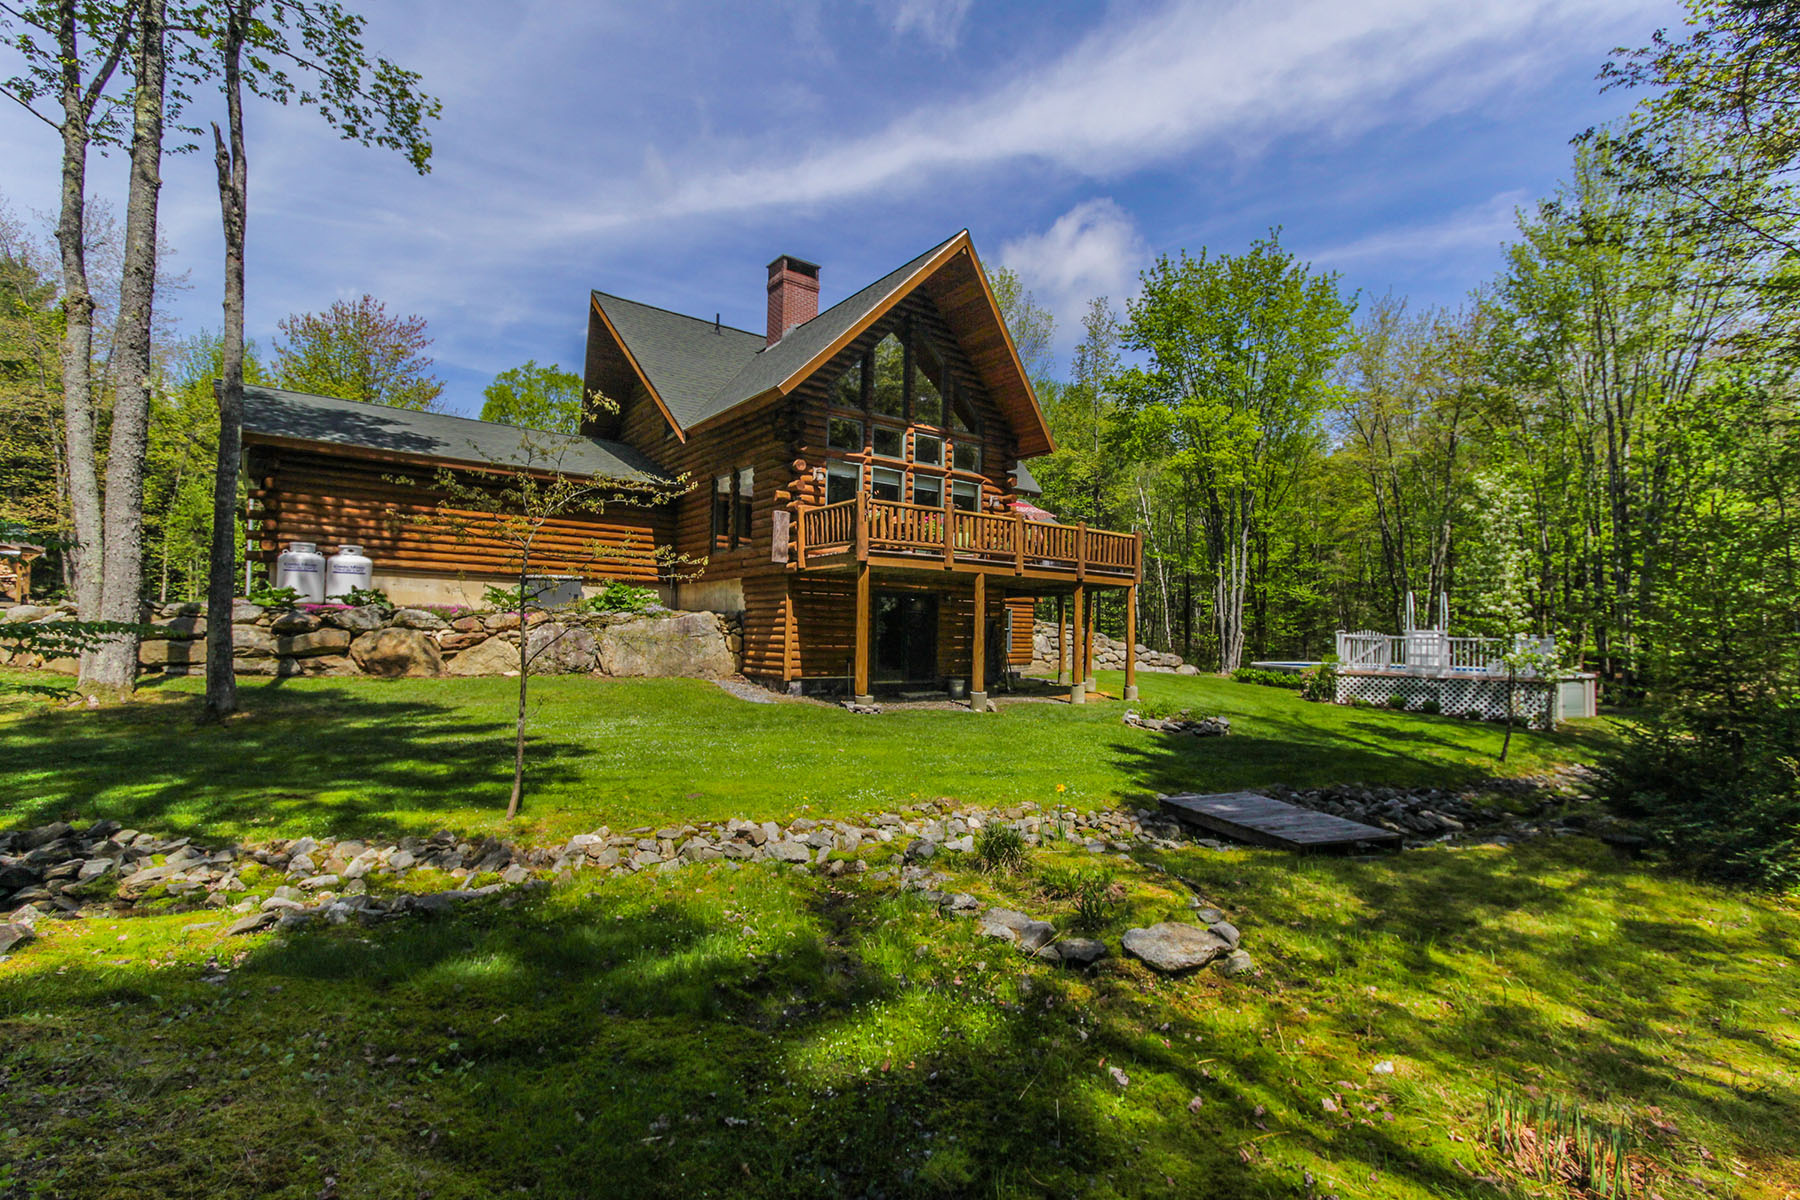 Single Family Home for Sale at 105 Collinsbrook Road Brunswick, Maine, 04011 United States